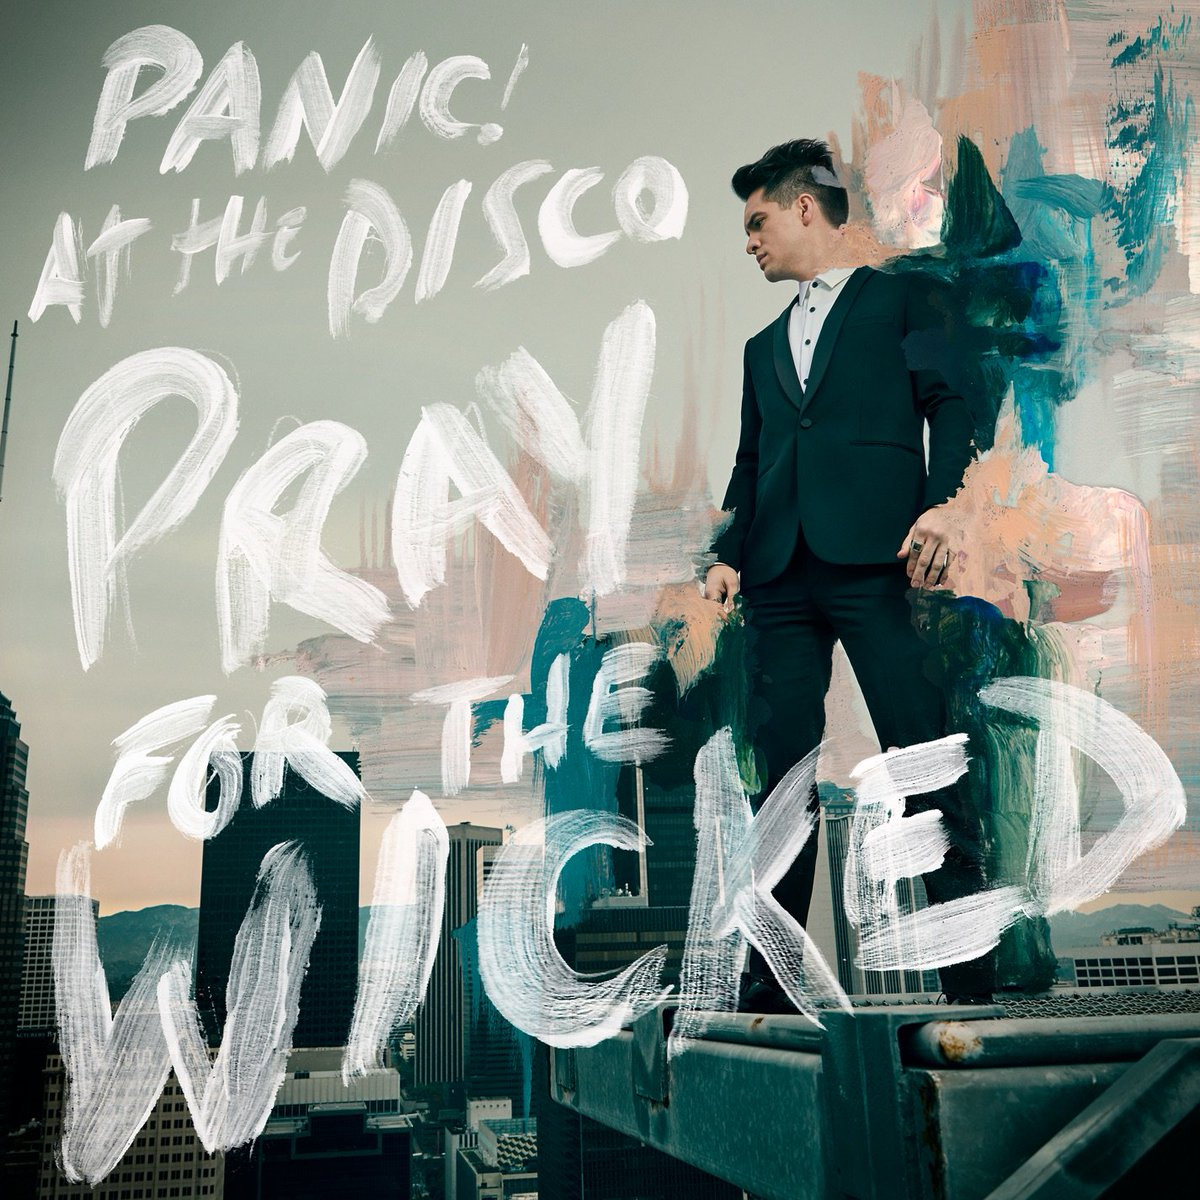 feae1bfa Love, Brendon Panic! At The Disco New album Pray For The Wicked out June  22nd - pre-order it now: https://patd.lnk.to/prayforthewicked  …pic.twitter.com/ ...